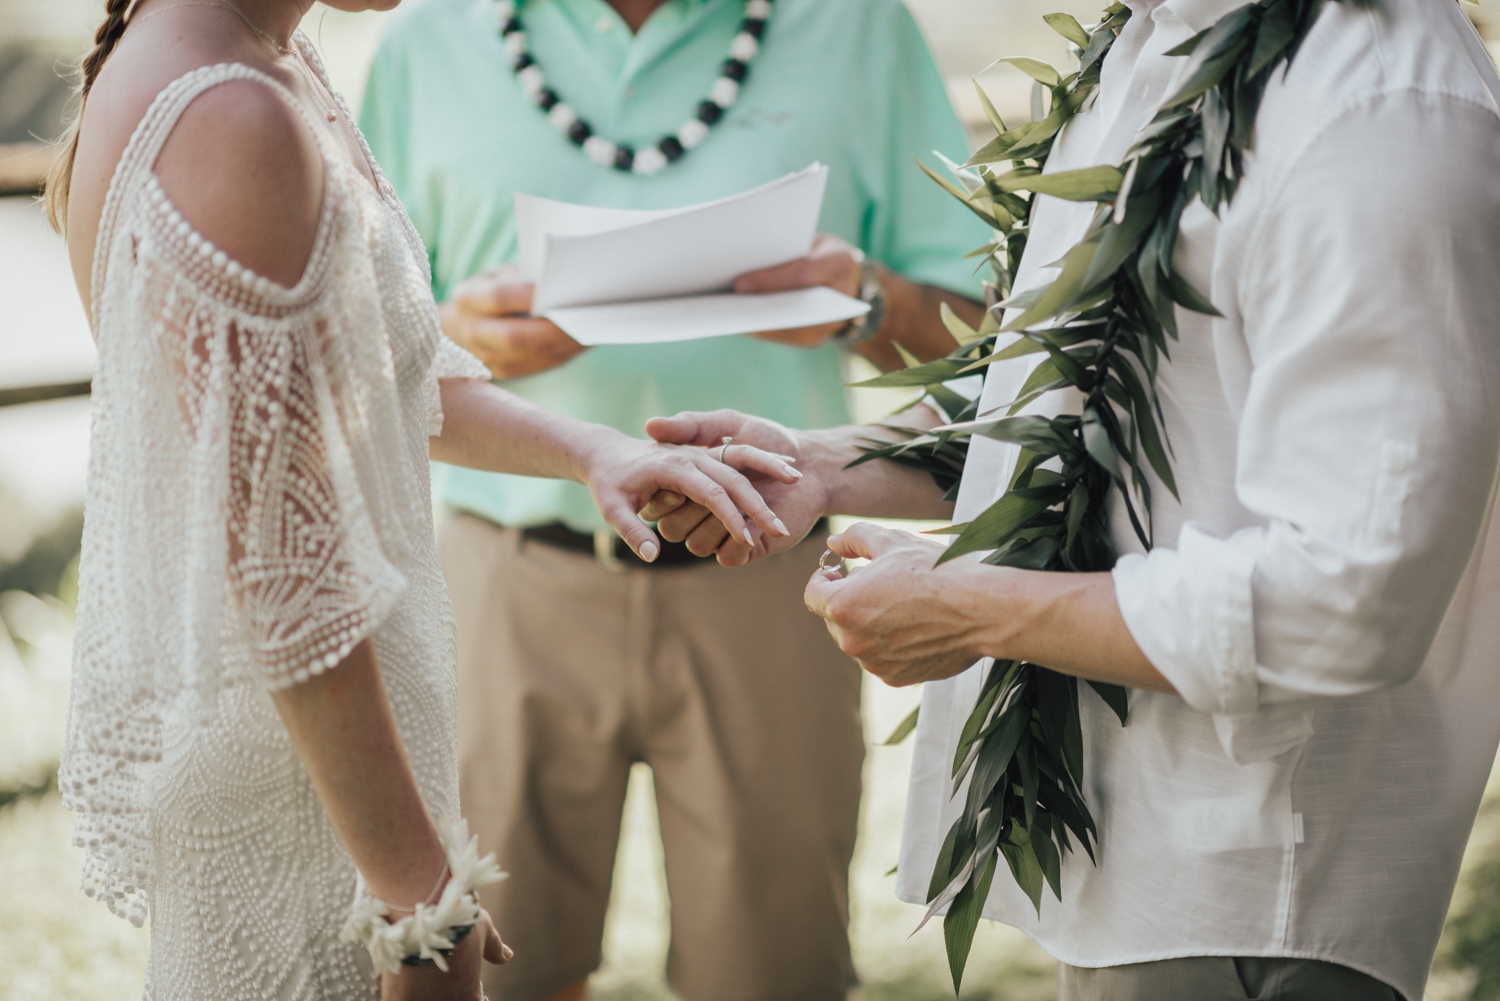 Kauai-elopement-photographer-39.jpg